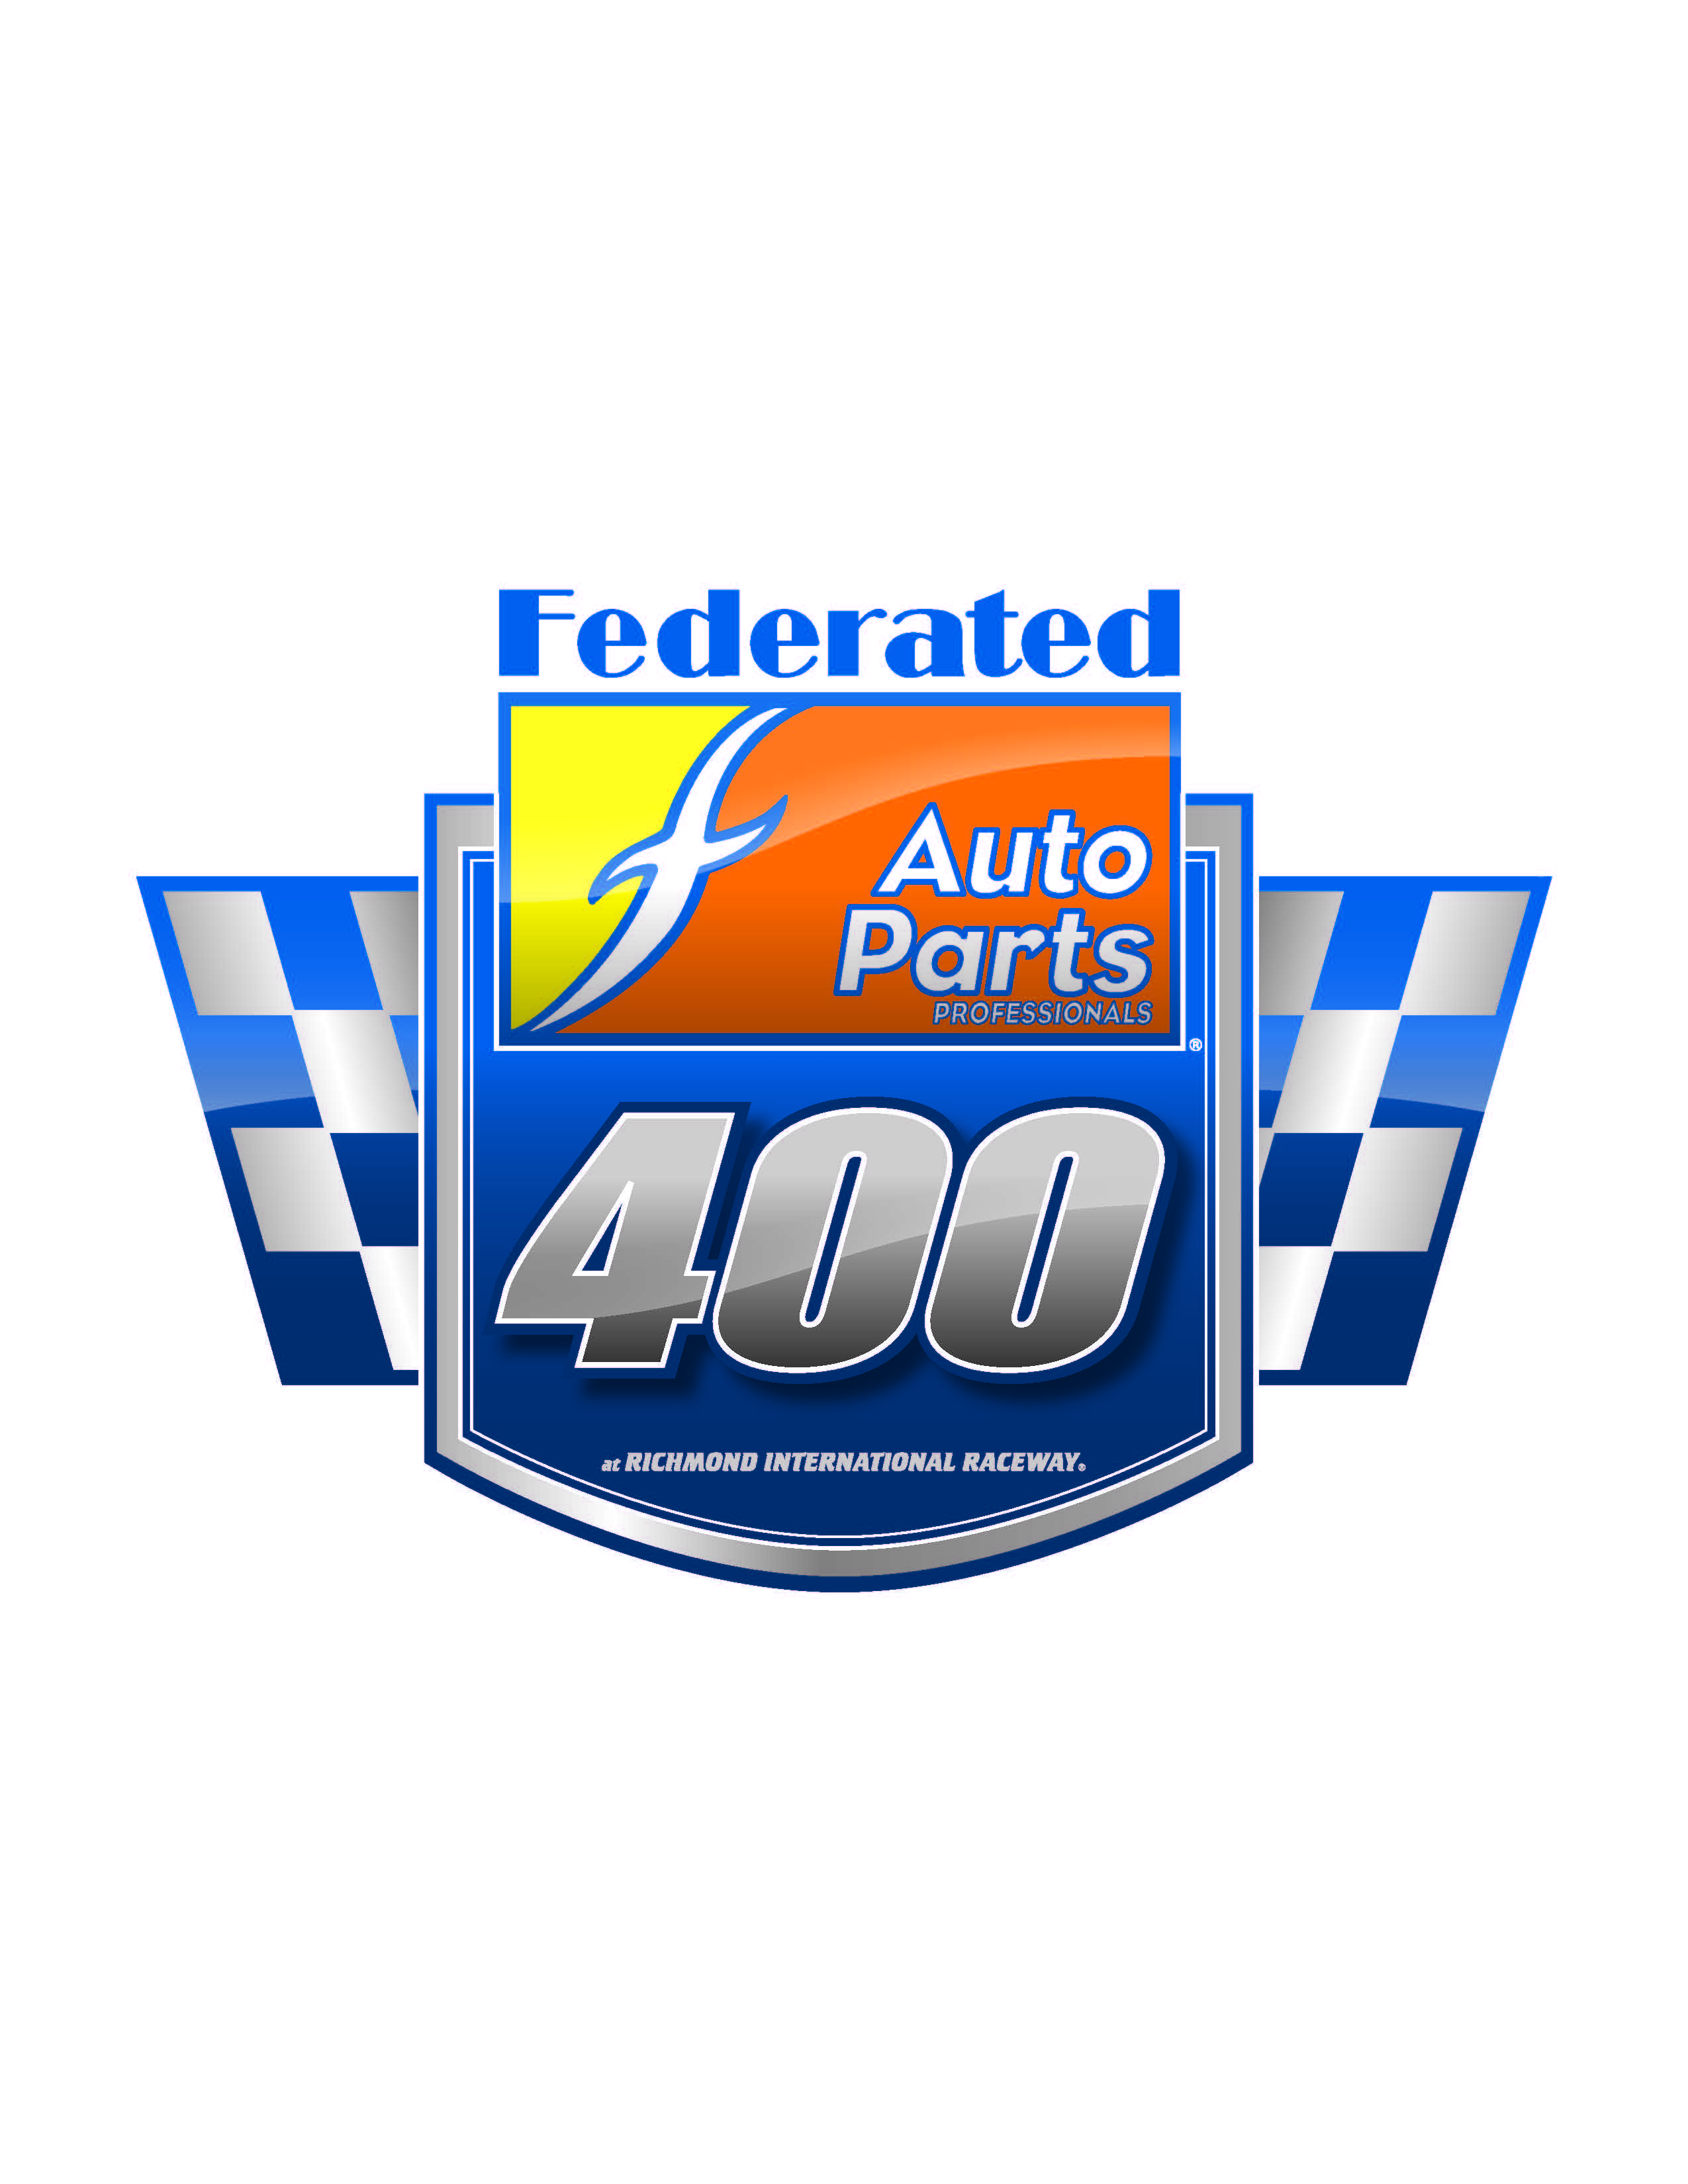 federated auto parts 400 set for sept 10 at richmond